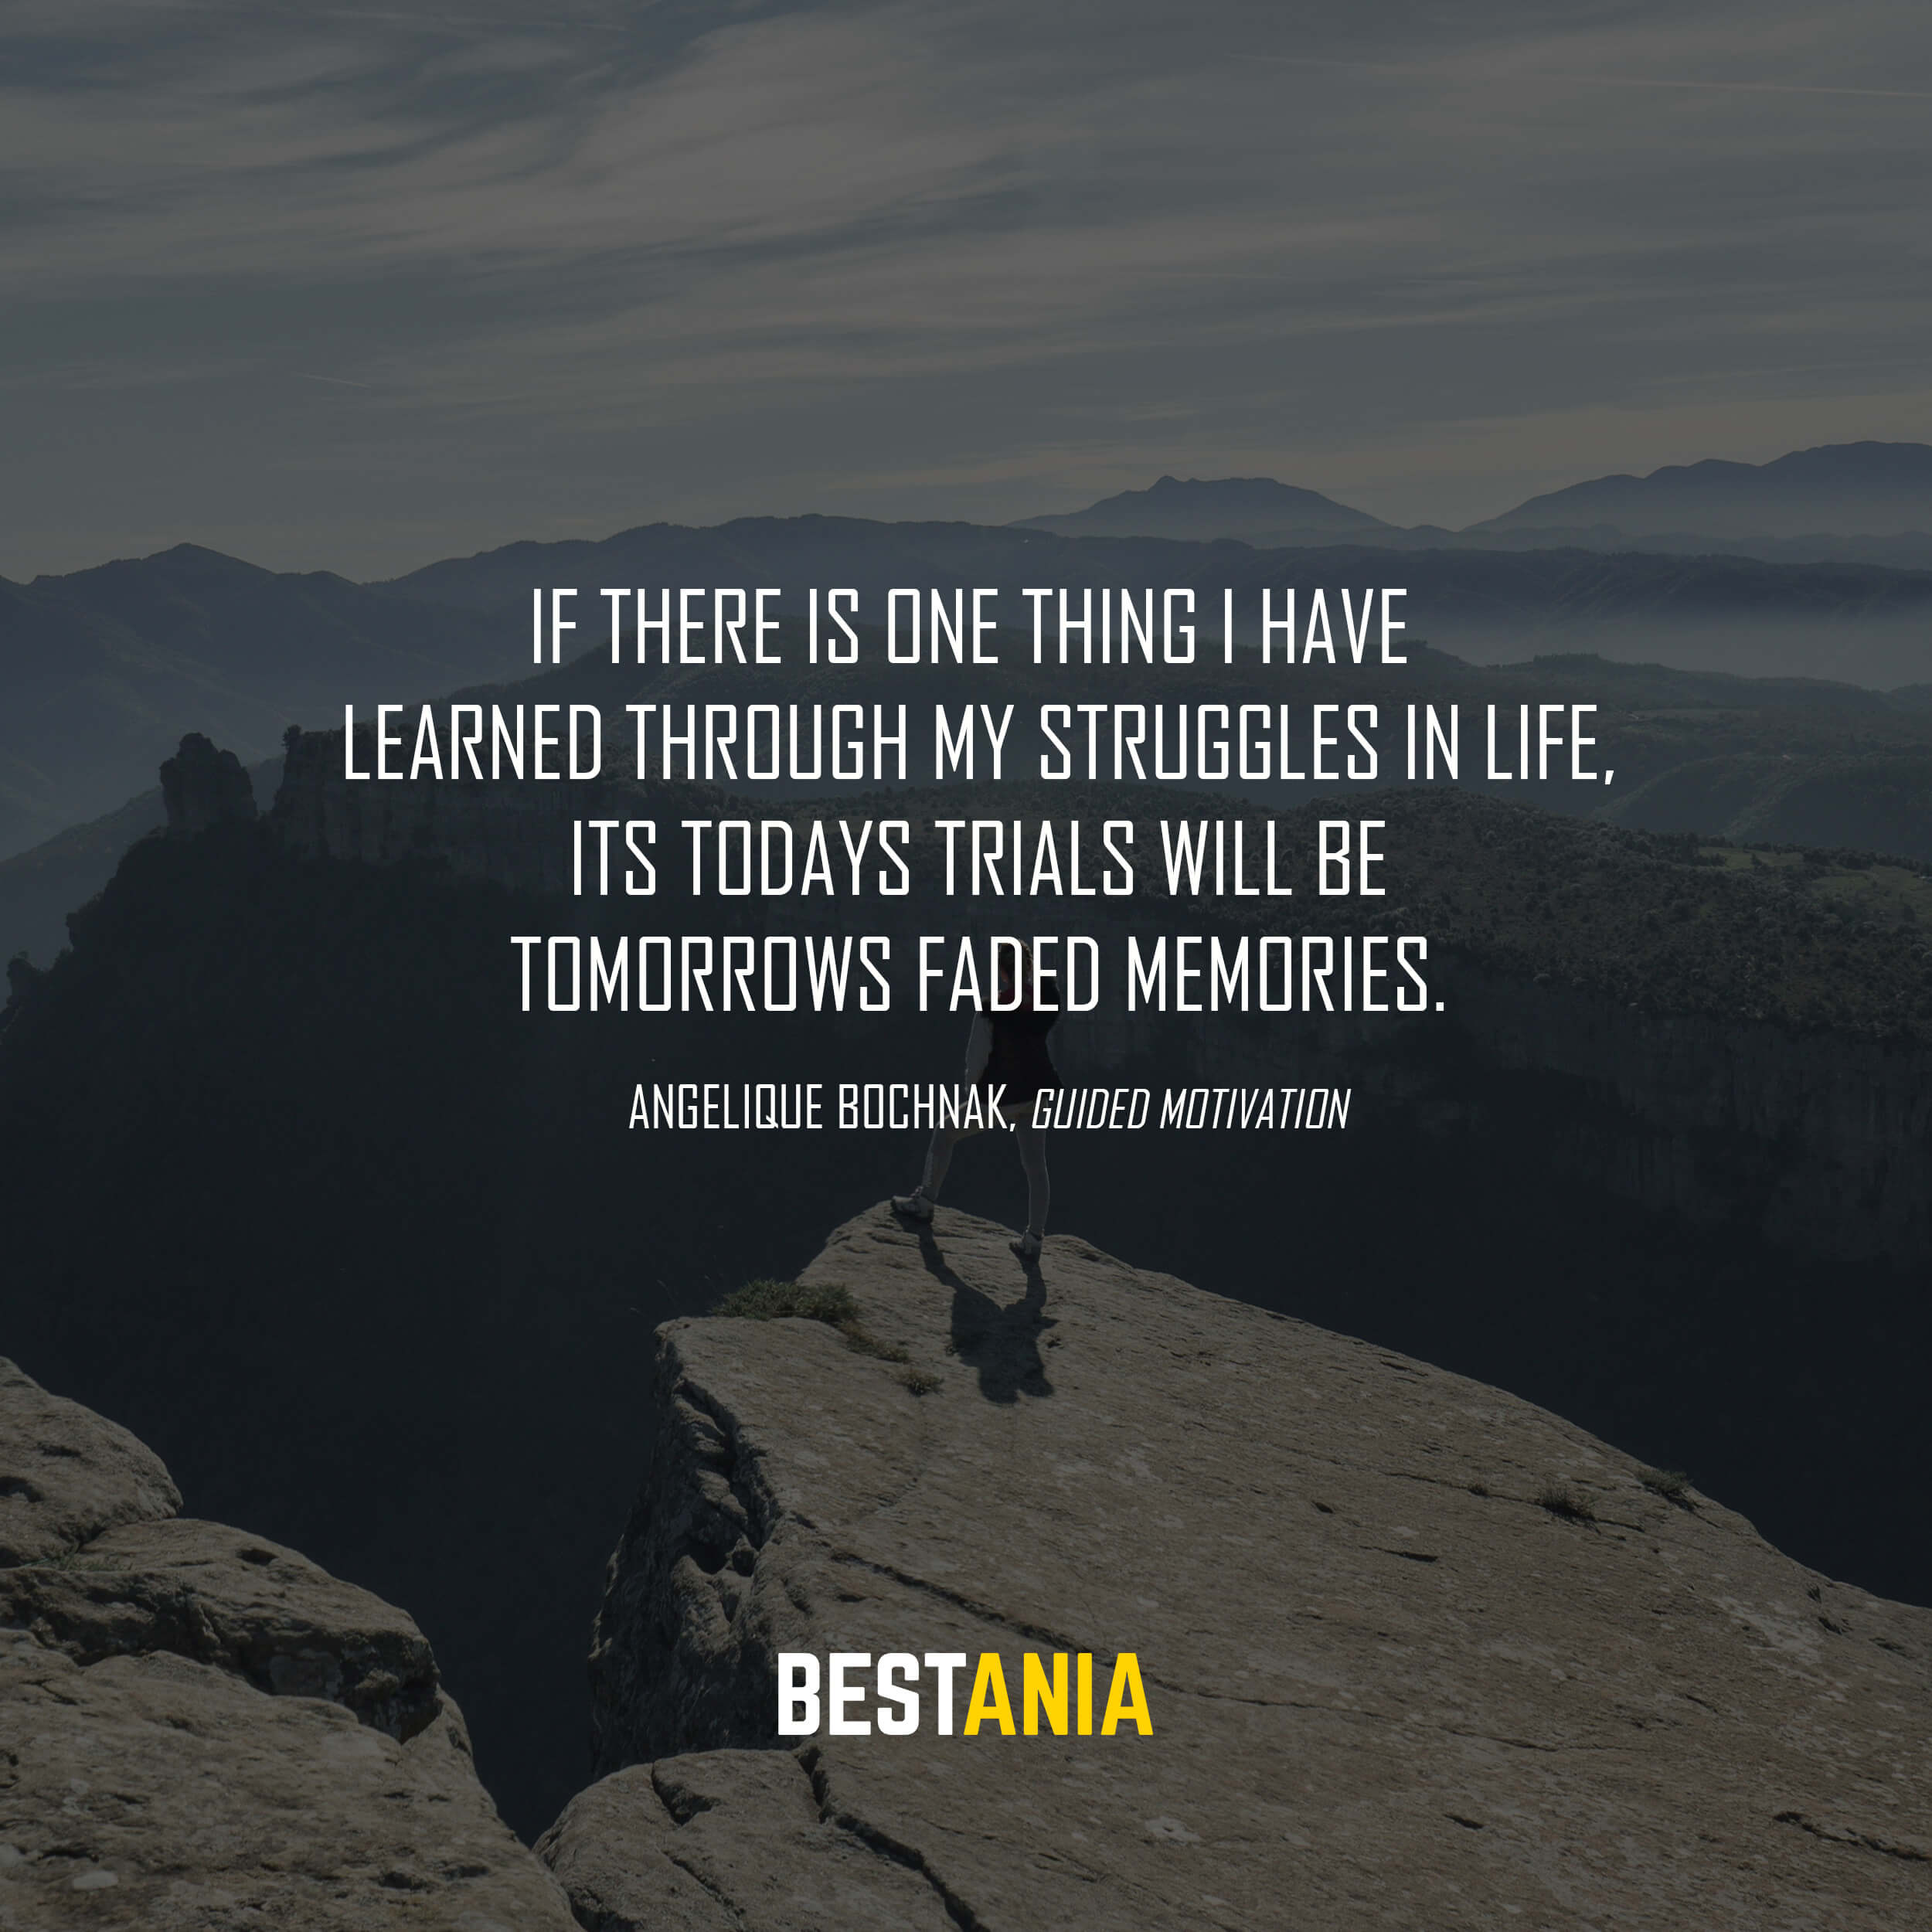 """If there is one thing I have learned through my struggles in life, its todays trials will be tomorrows faded memories."" Angelique Bochnak, Guided Motivation"